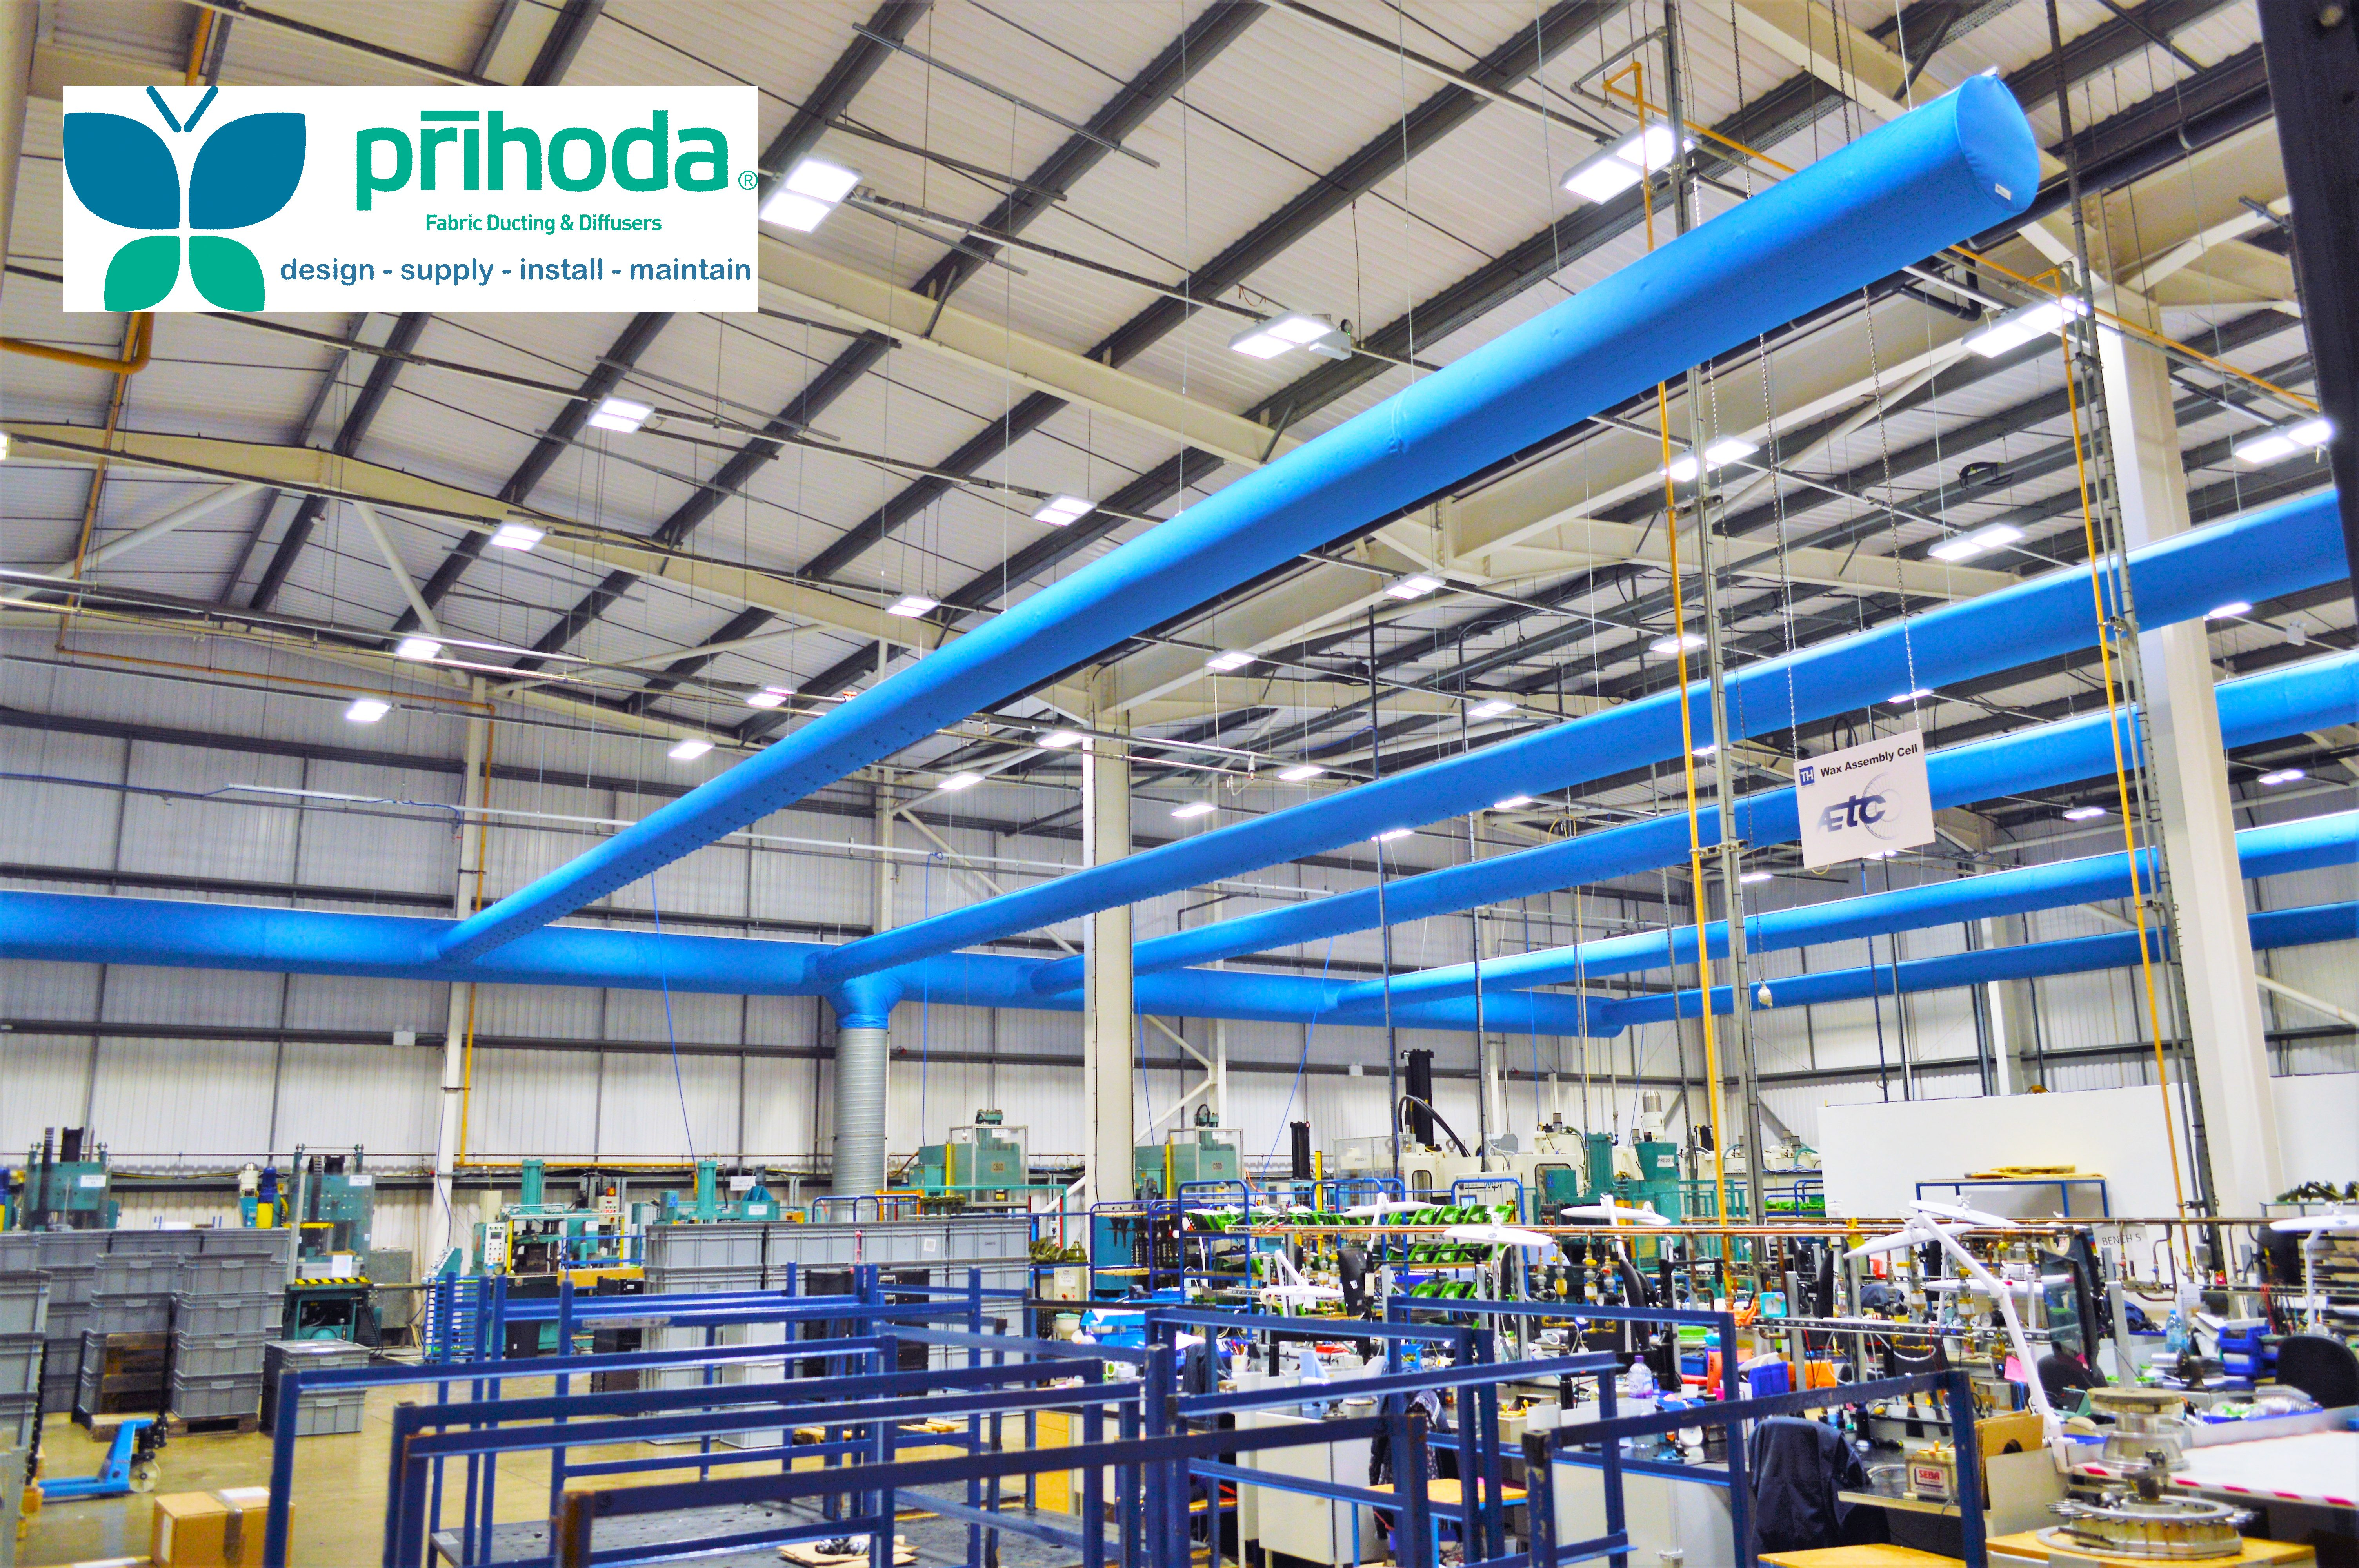 factory view with antistatic material air ducting